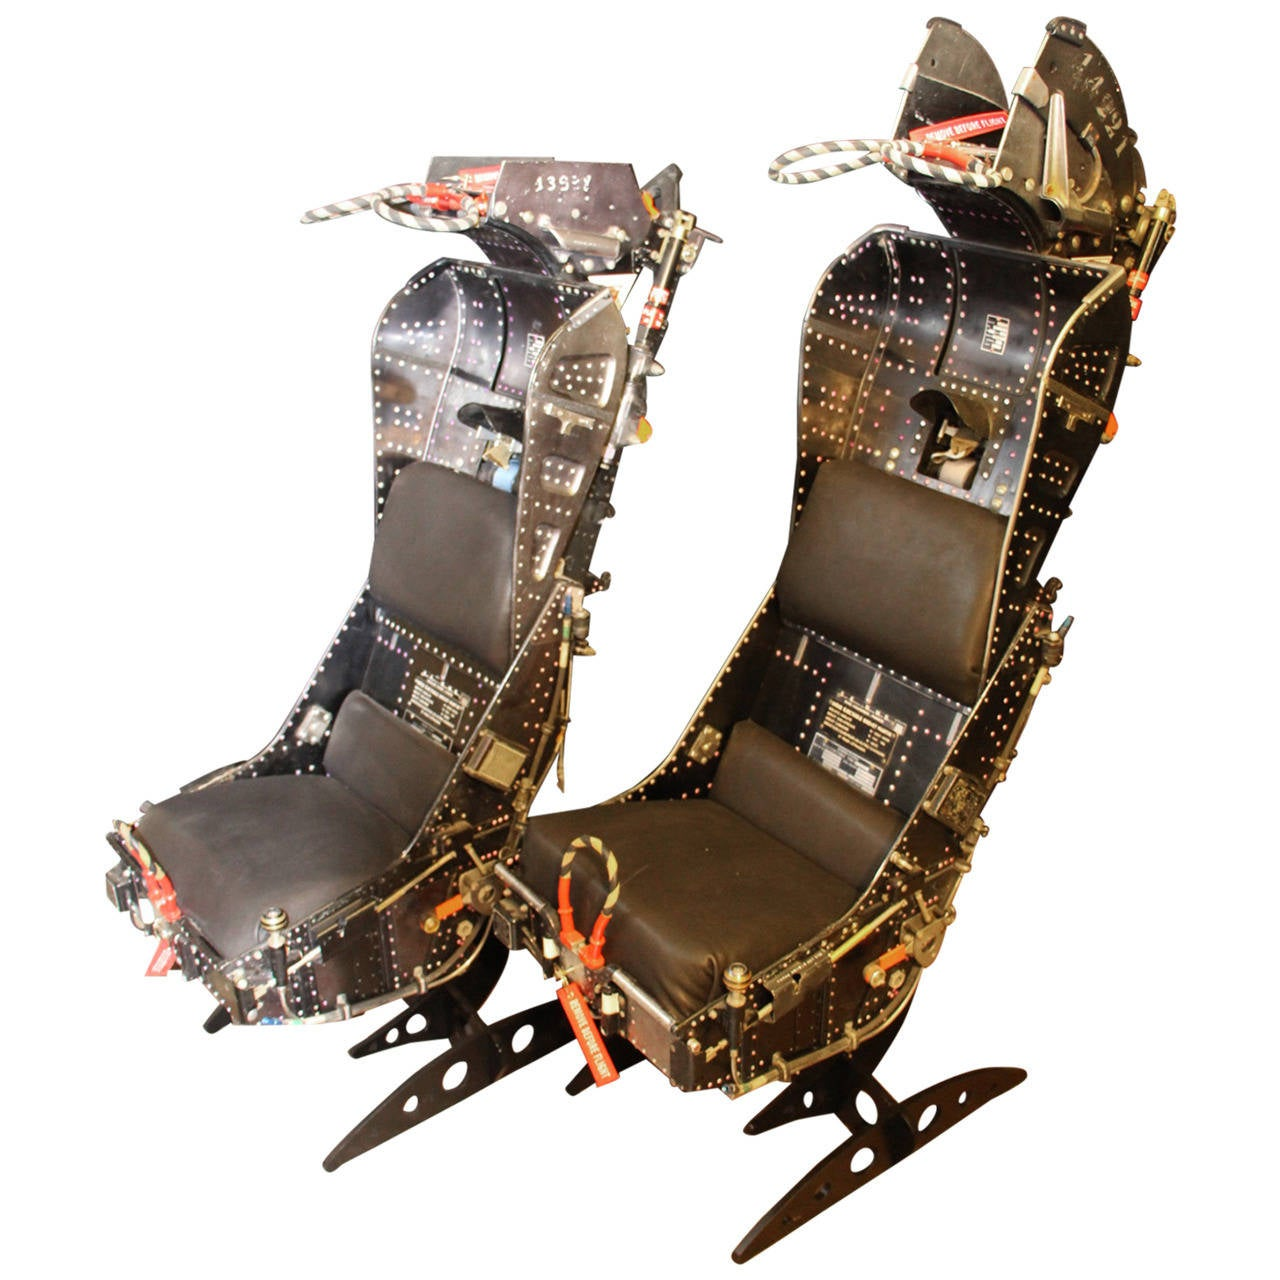 Martin Baker Mk4 Ejection Seat At 1stdibs